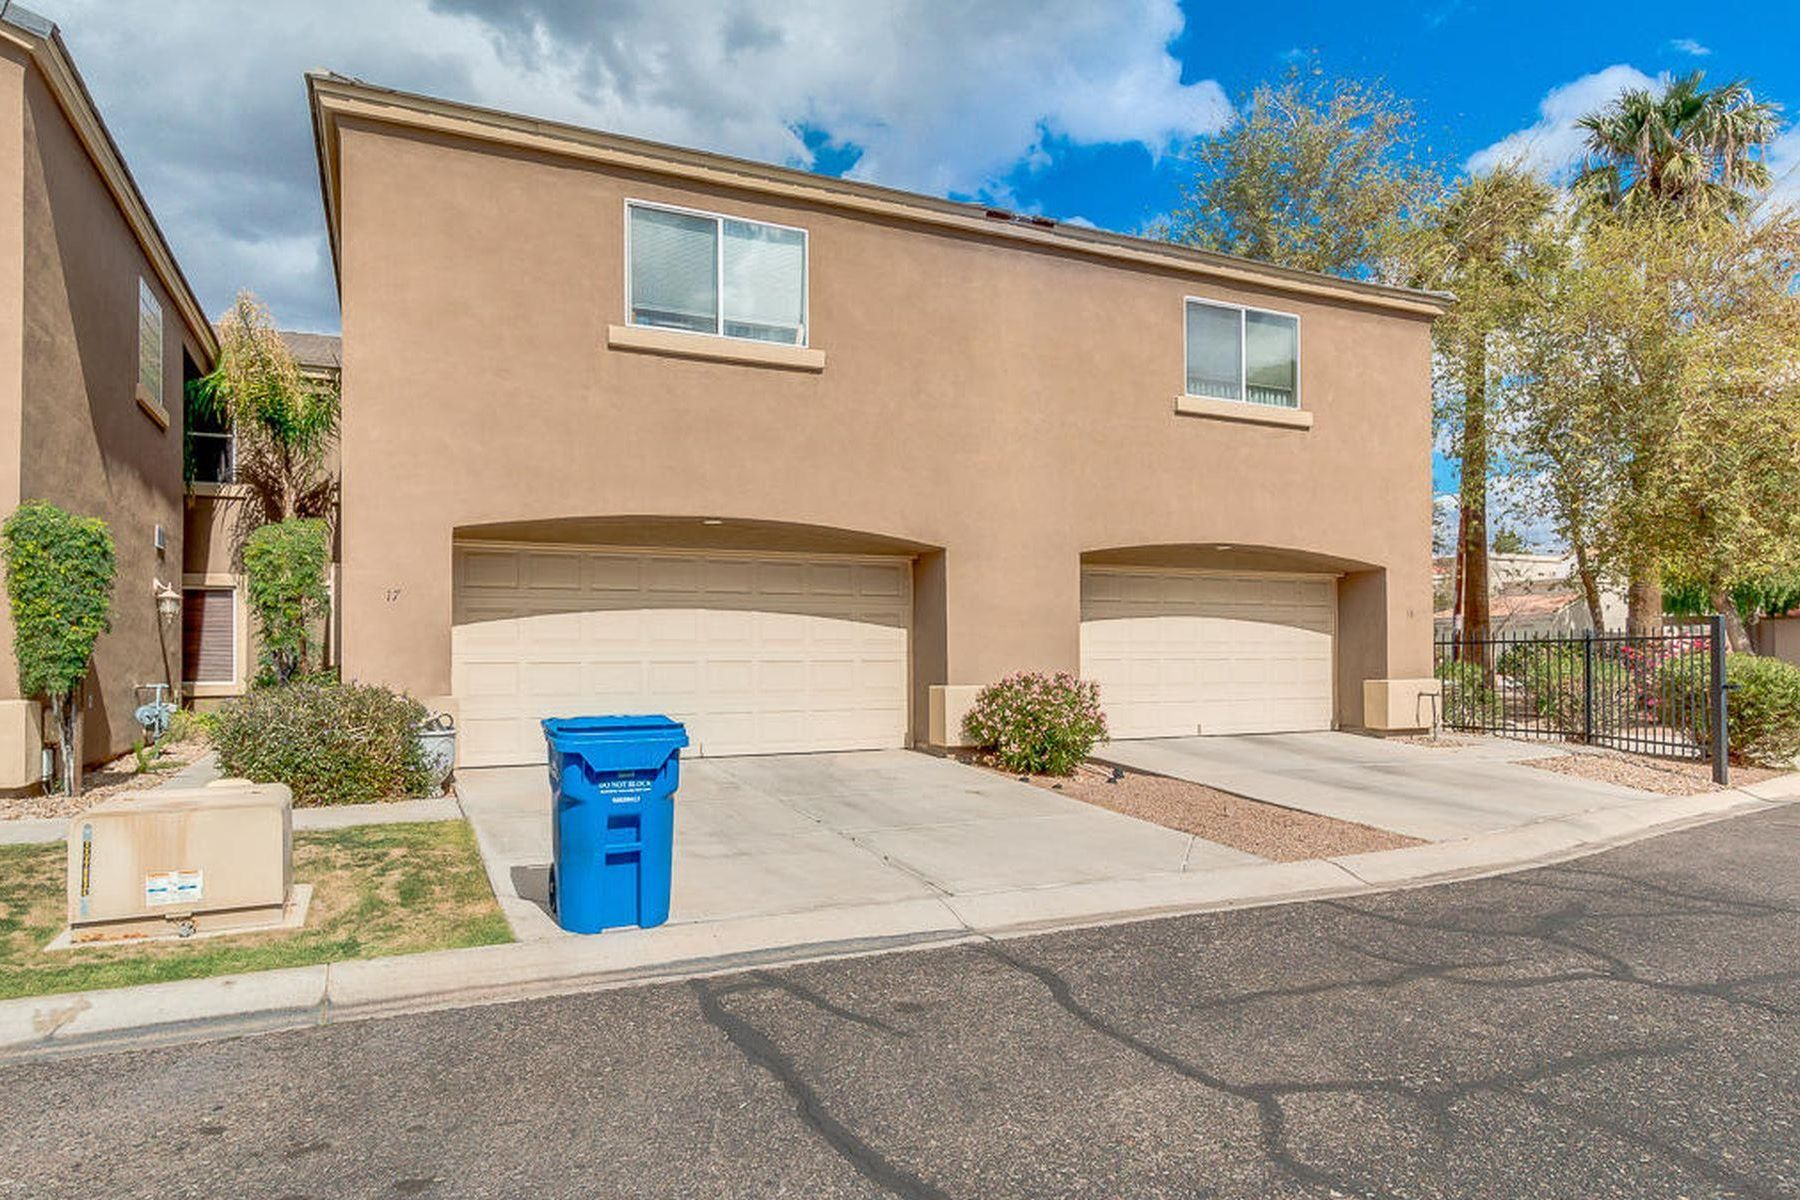 Townhouse for Sale at Open and Spacious Home 4202 N 21ST ST 17 Phoenix, Arizona 85016 United States